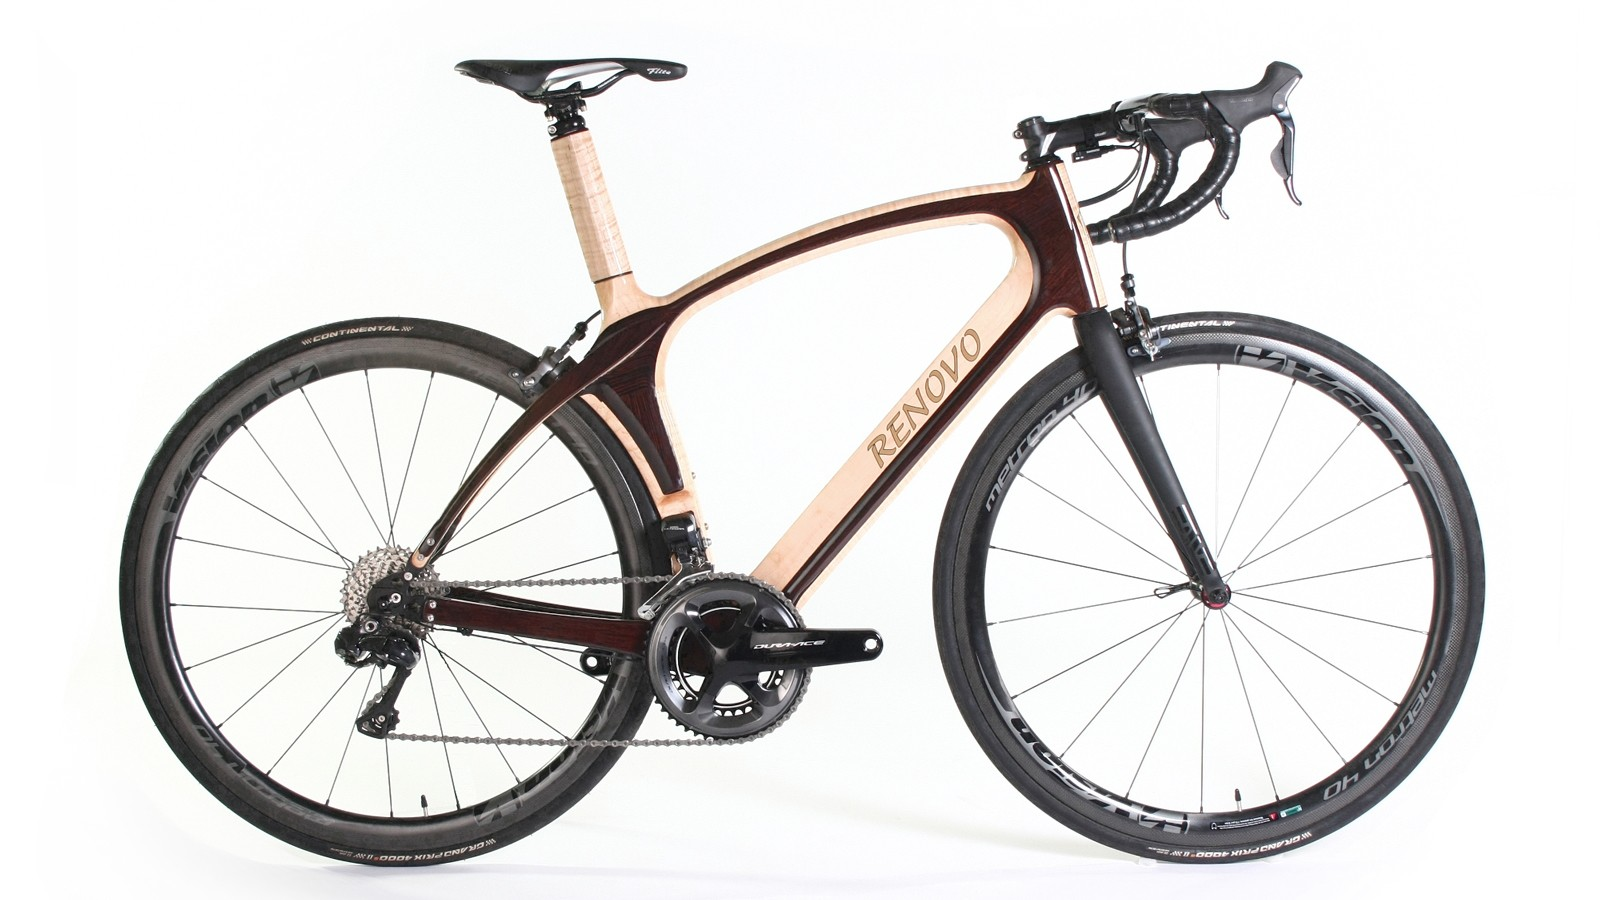 Renovo claims the wood and carbon construction is incredibly smooth